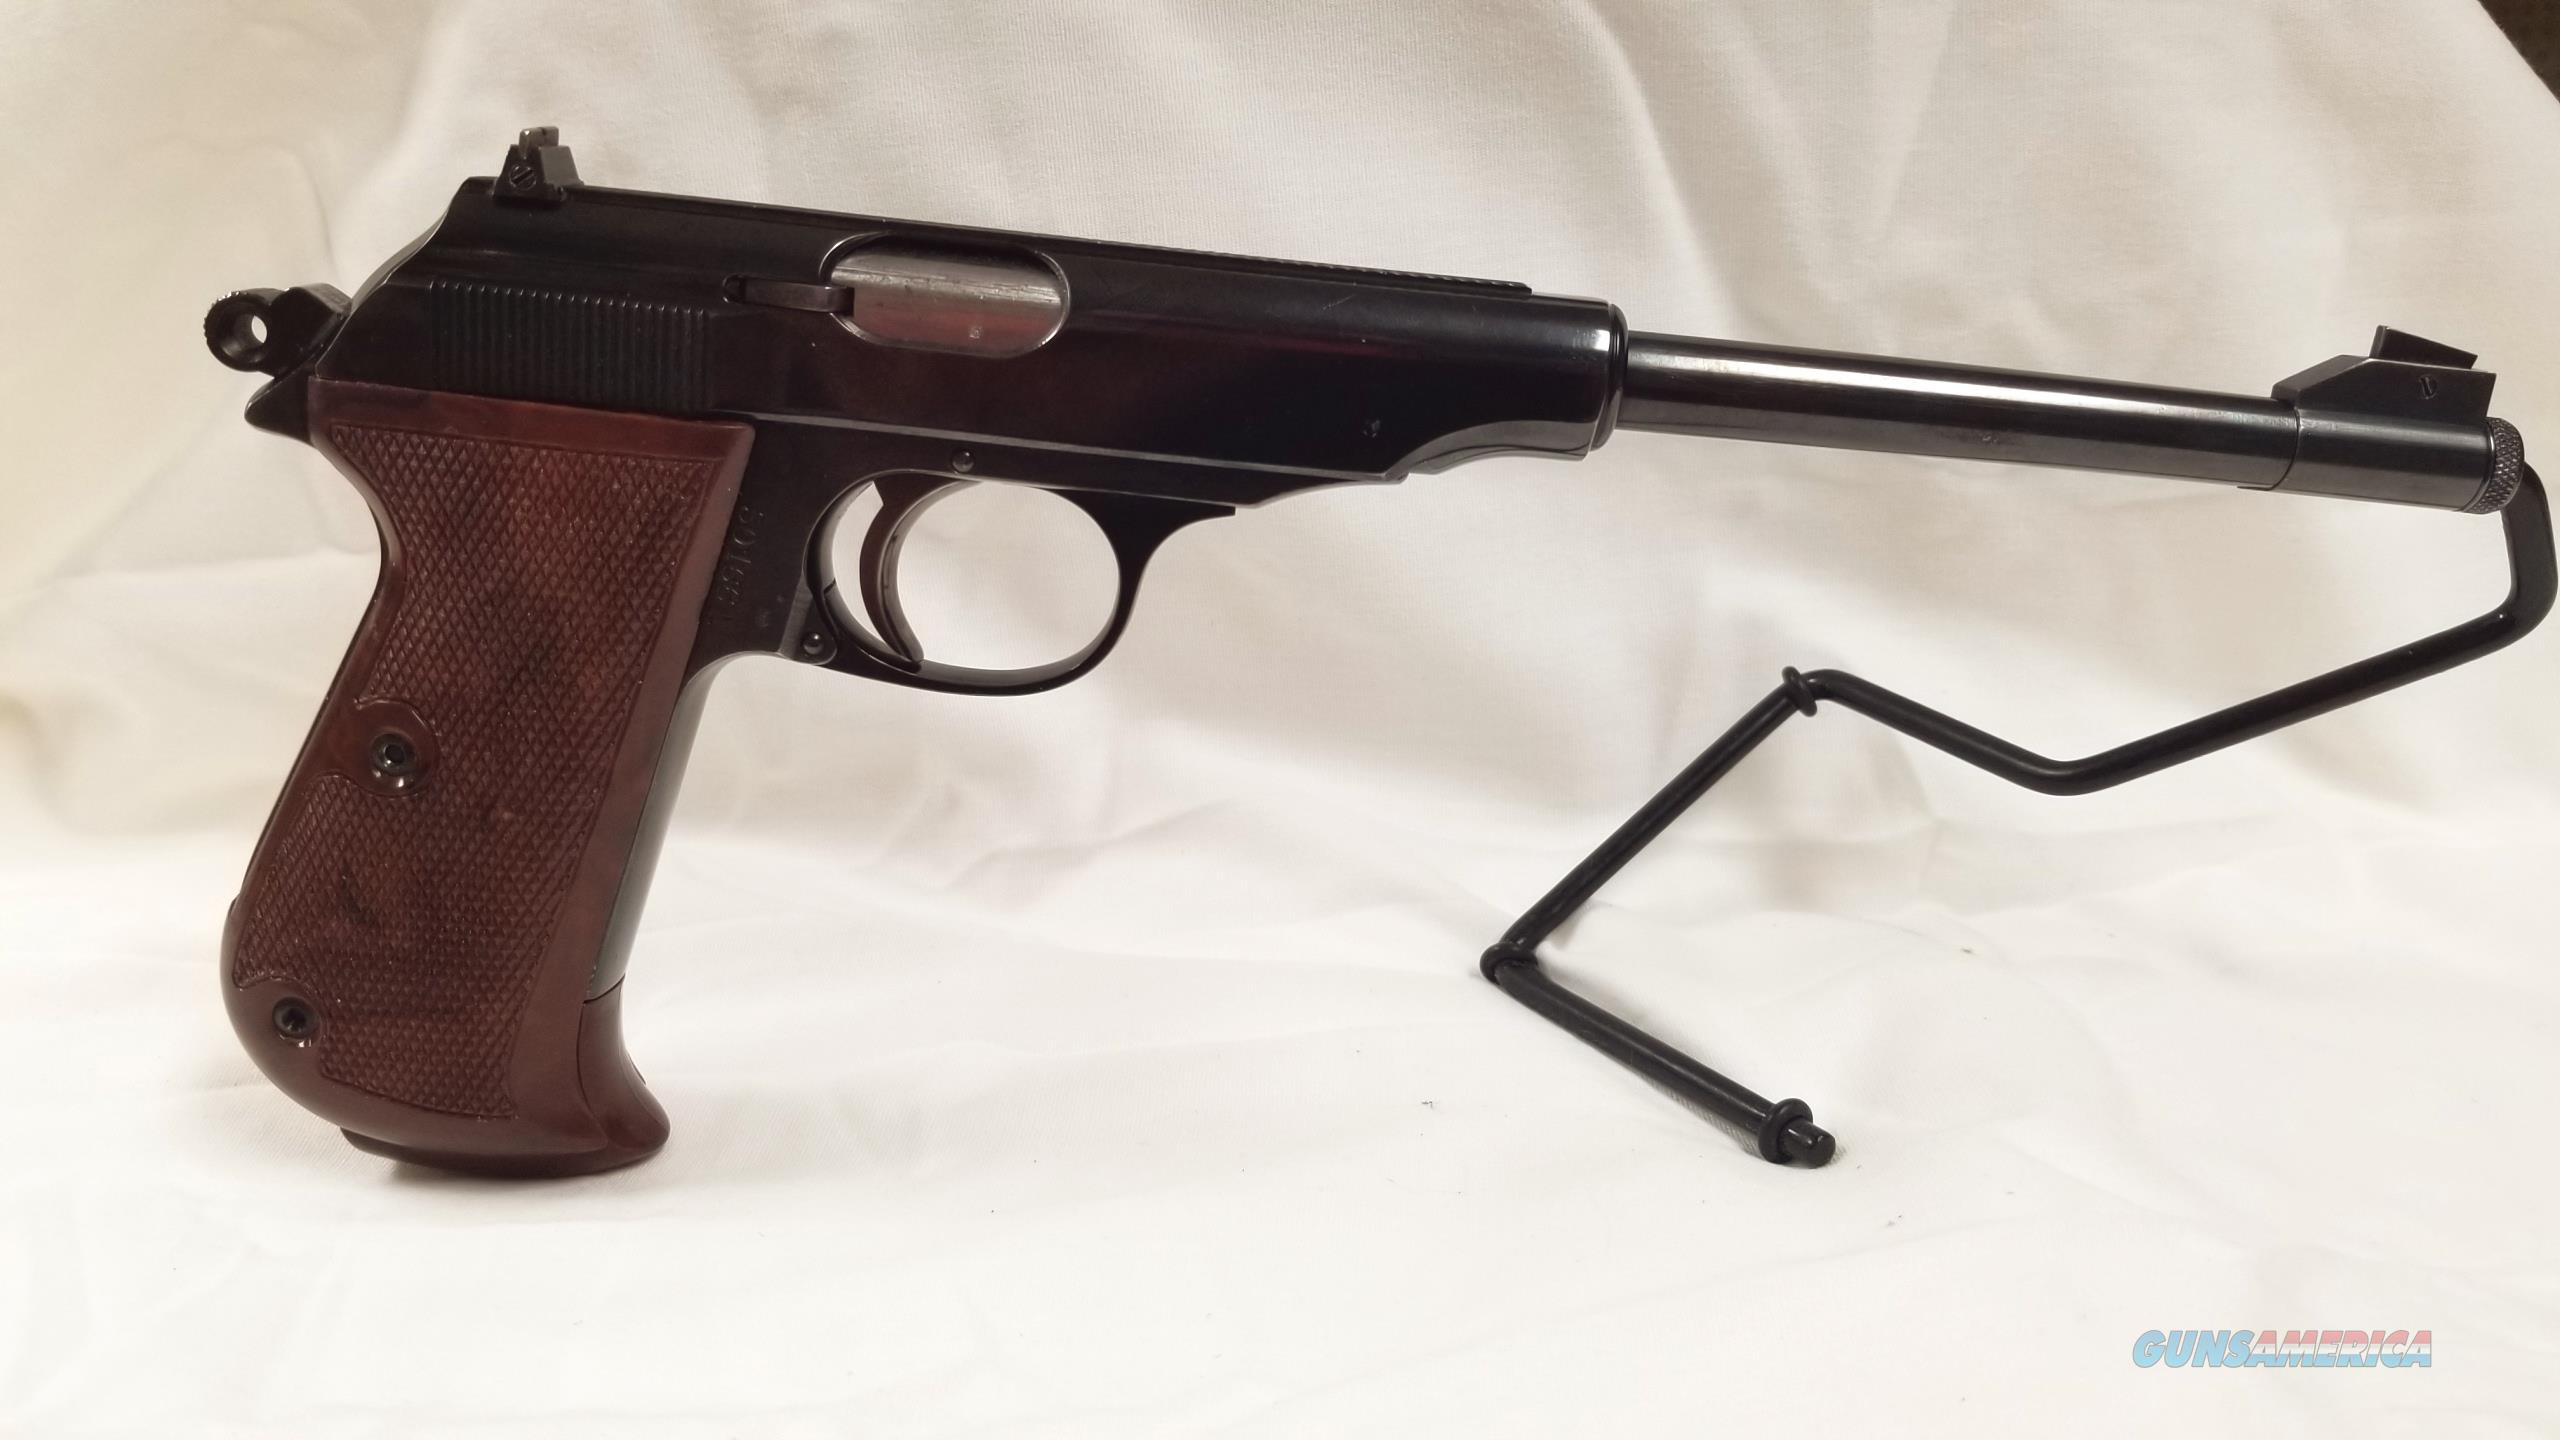 Manurhin Walther PP22 22LR  Guns > Pistols > Walther Pistols > Pre-1945 > PP